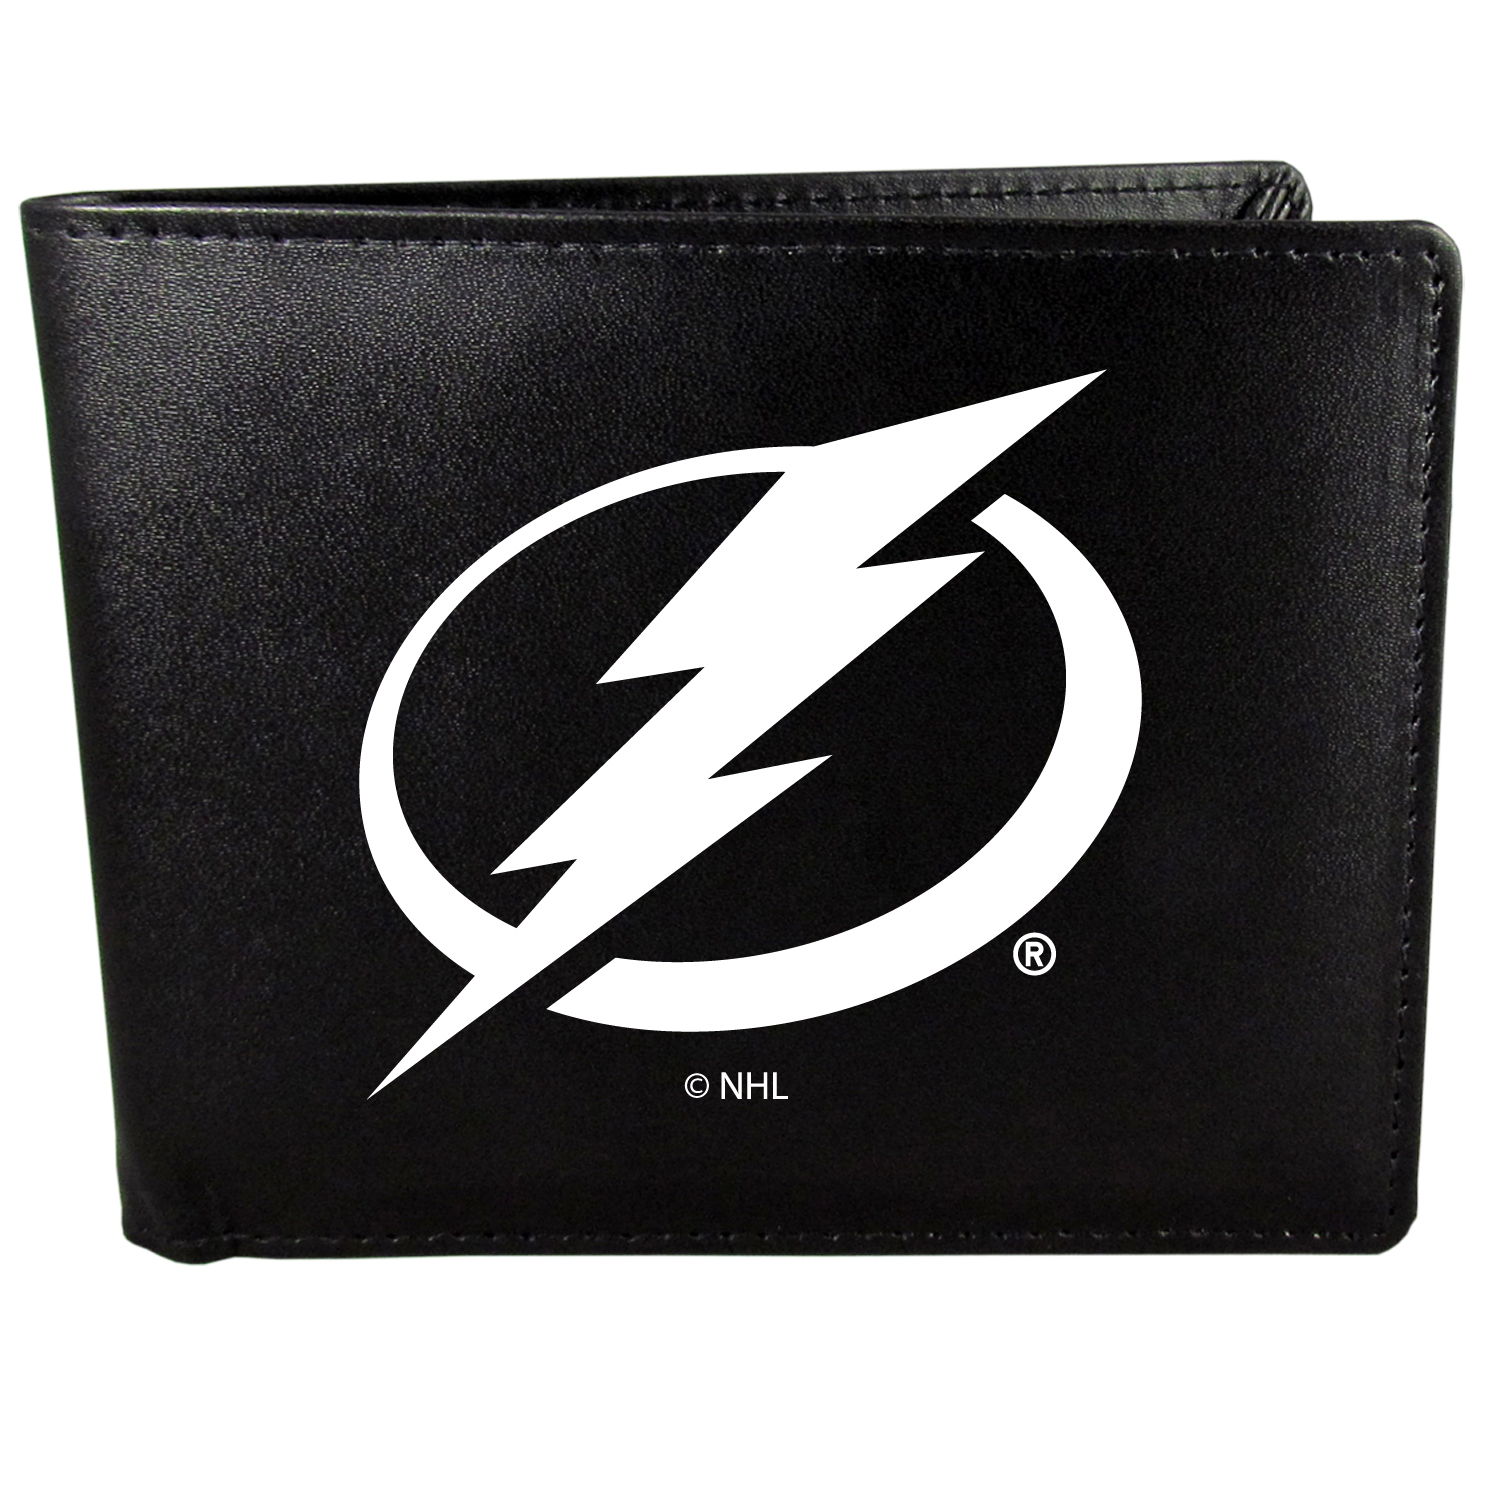 Tampa Bay Lightning Bi-fold Wallet Large Logo - Sports fans do not have to sacrifice style with this classic bi-fold wallet that sports the Tampa Bay Lightning?extra large logo. This men's fashion accessory has a leather grain look and expert craftmanship for a quality wallet at a great price. The wallet features inner credit card slots, windowed ID slot and a large billfold pocket. The front of the wallet features a printed team logo.